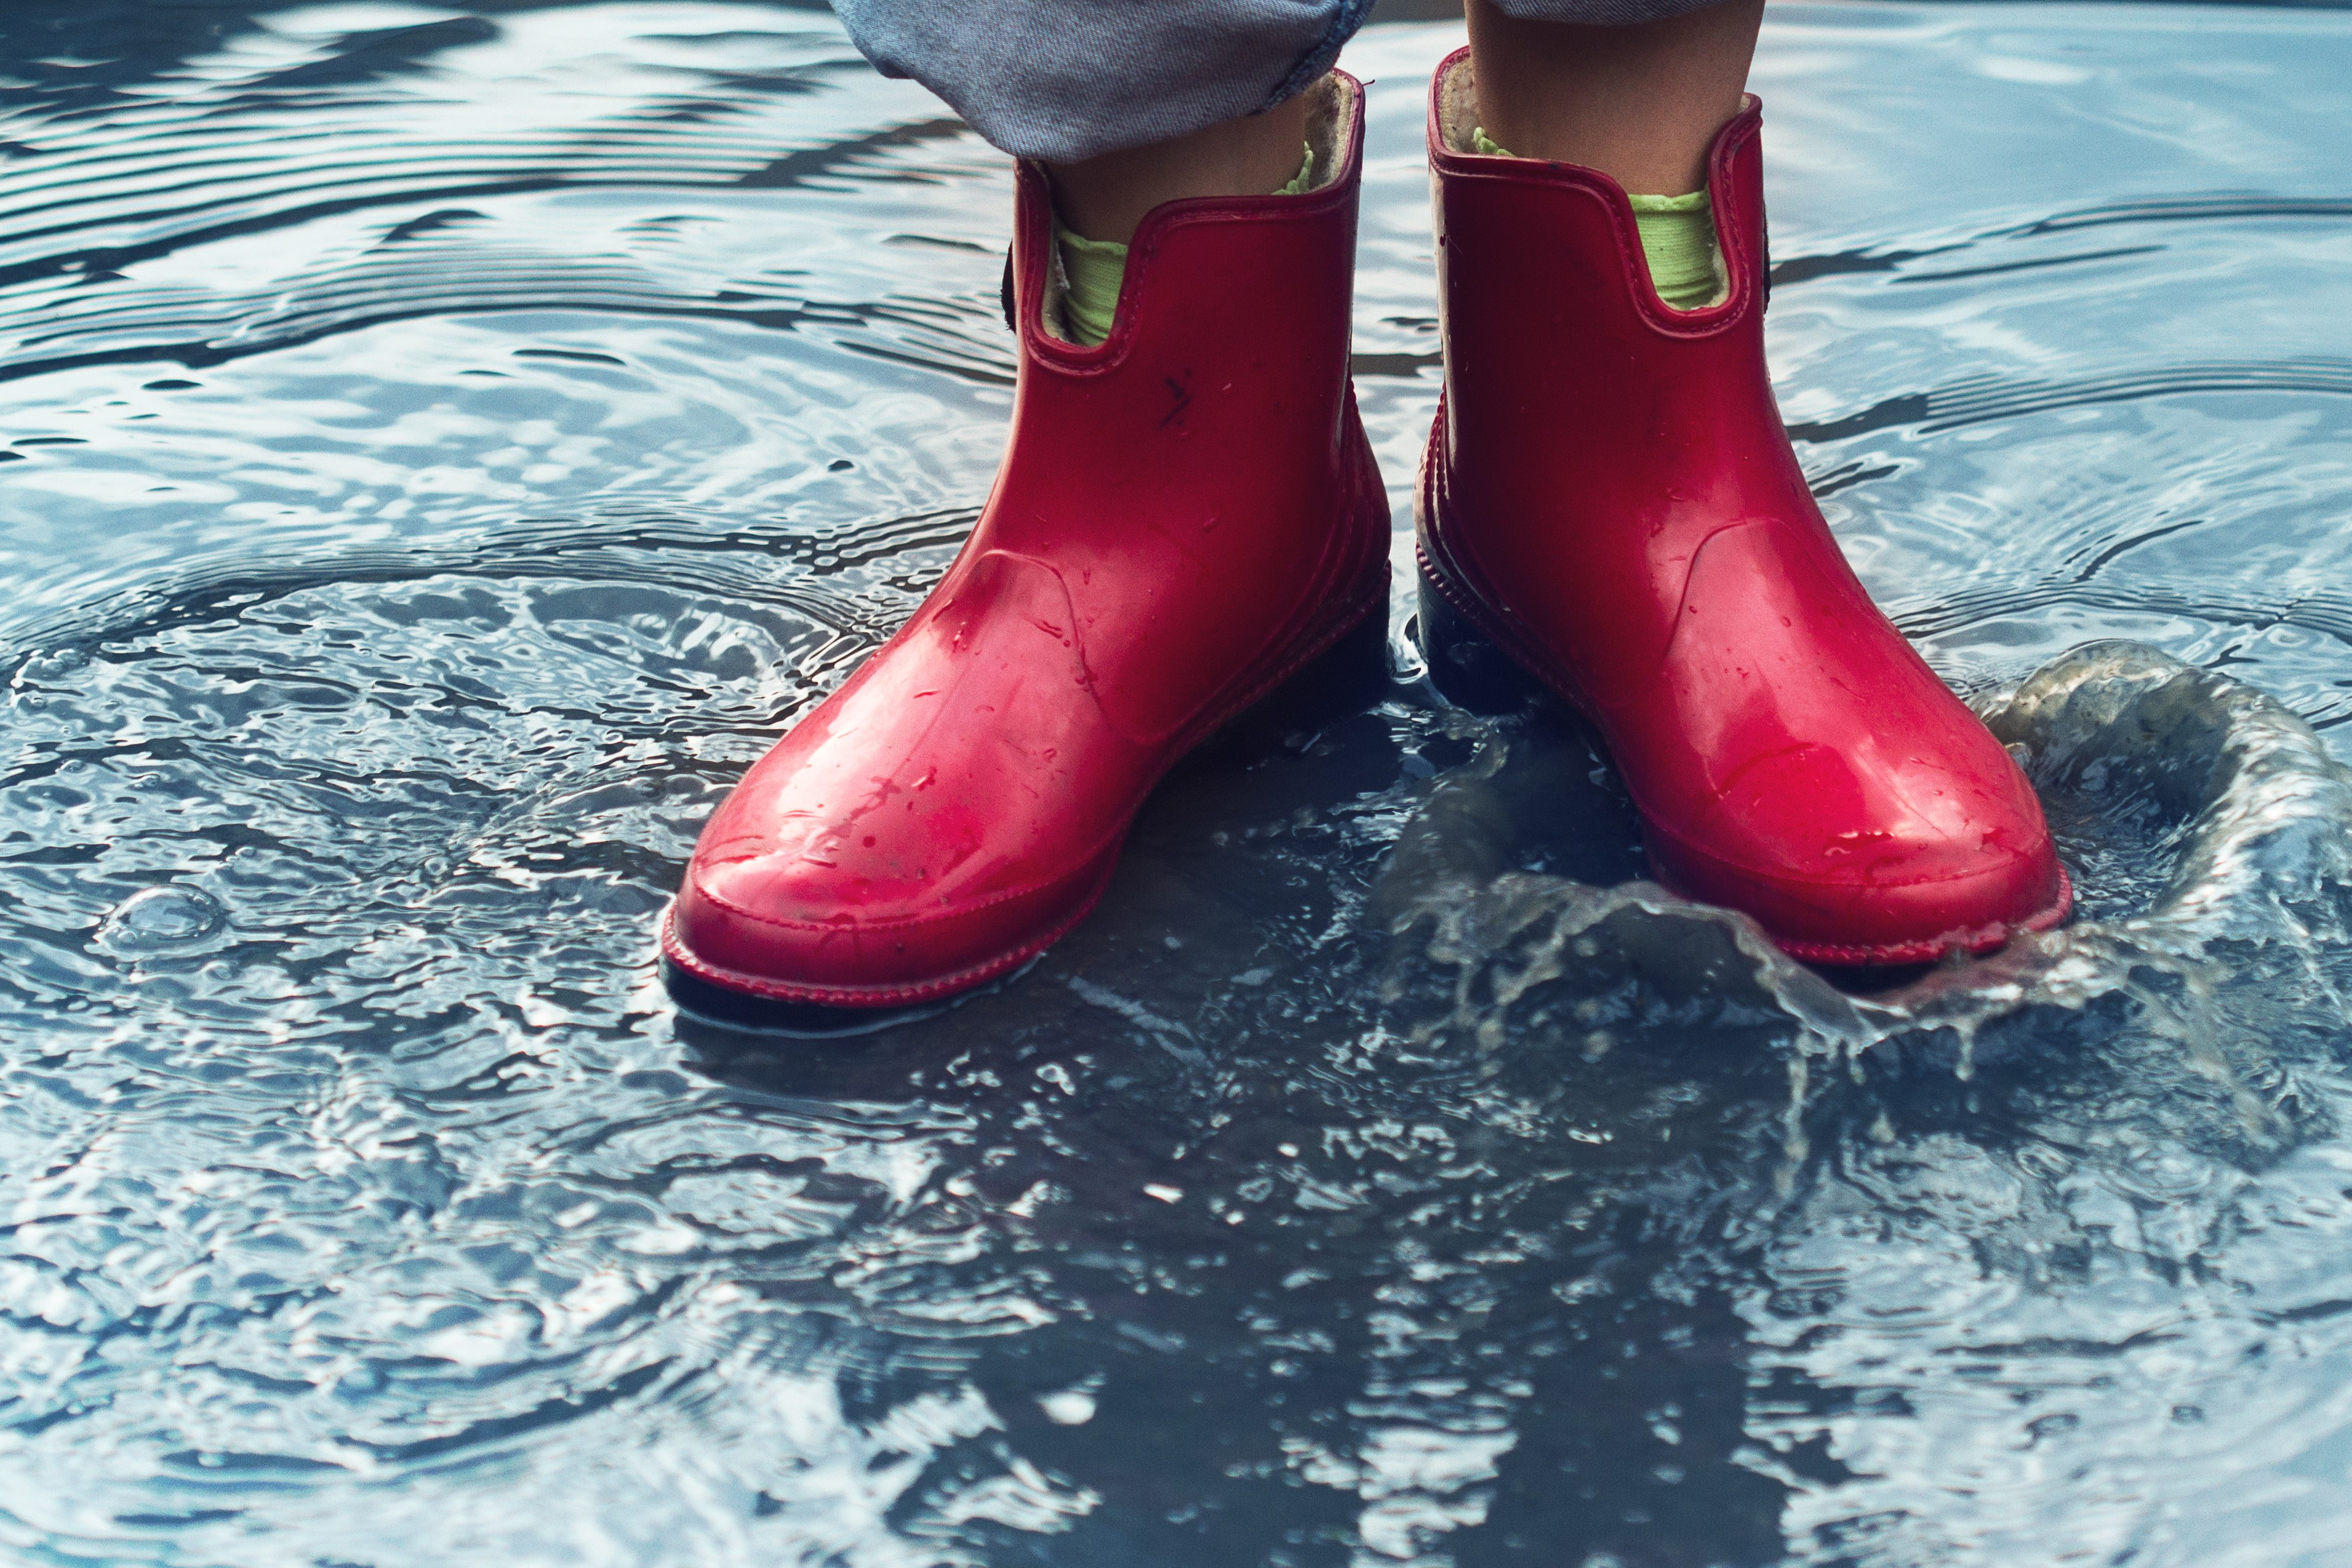 A bright red rain boots standing over a puddle of water